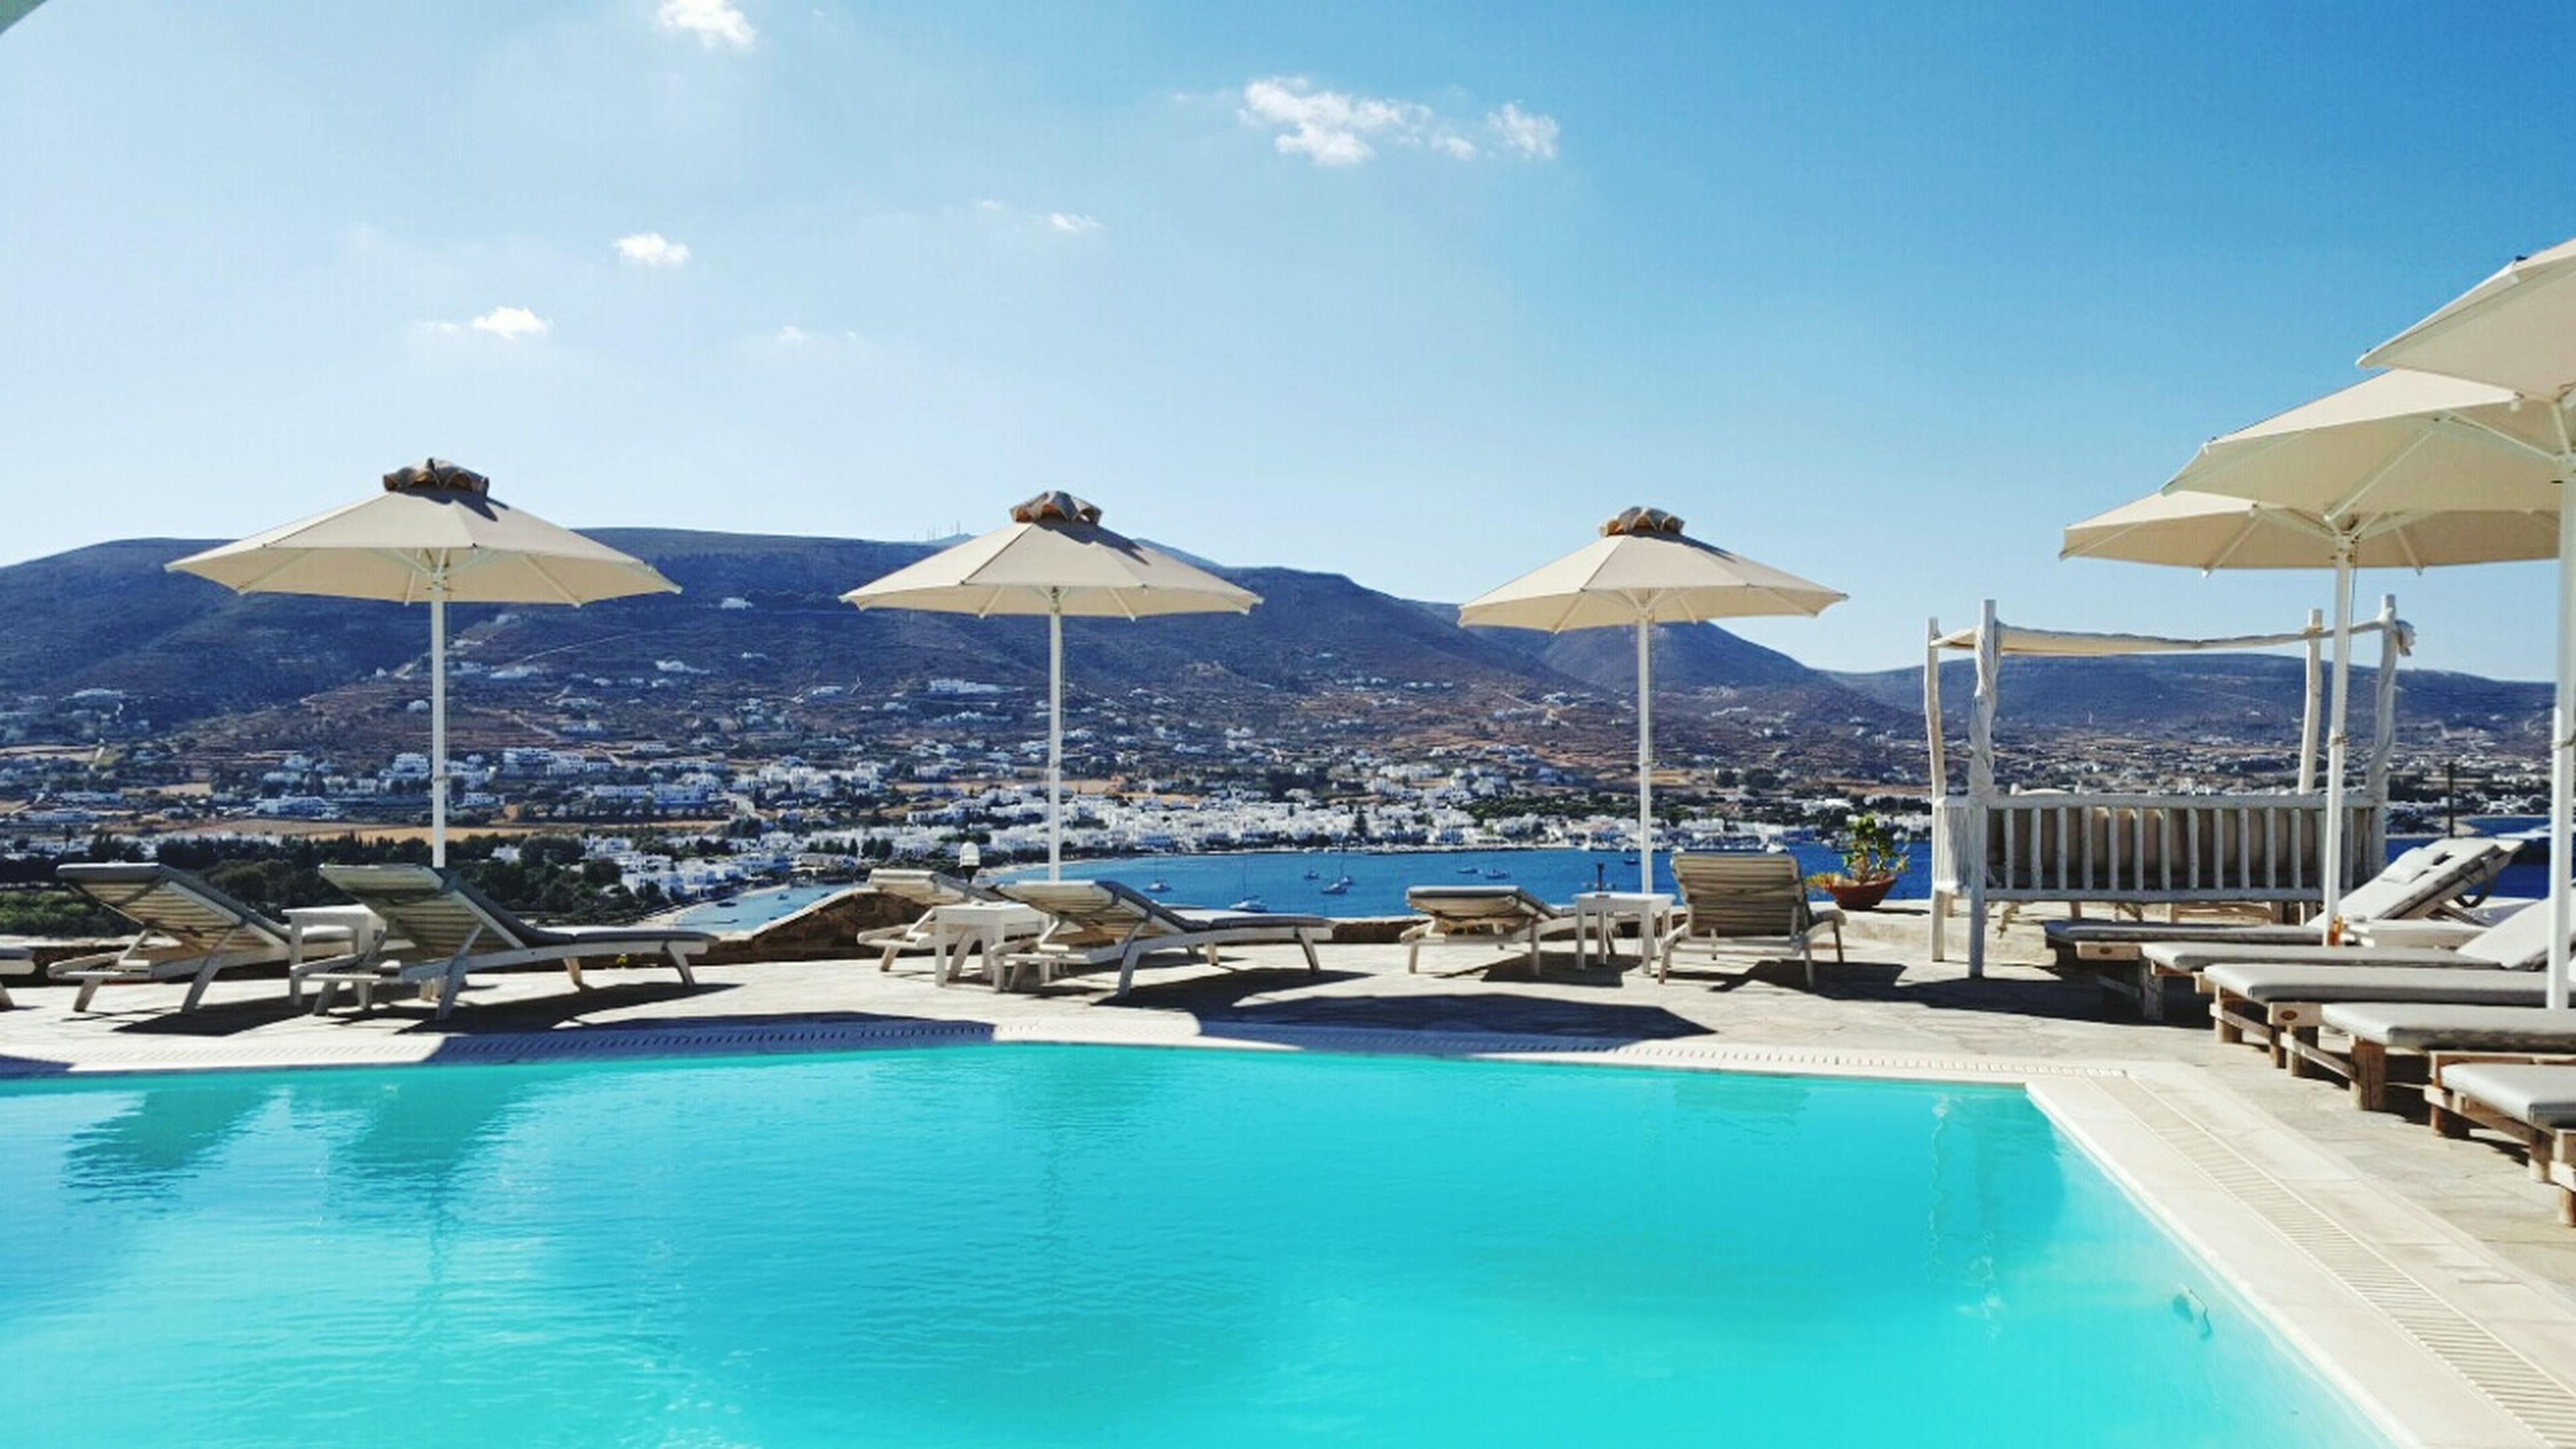 sunshade, water, beach umbrella, sky, parasol, blue, swimming pool, sea, tranquility, tranquil scene, sunny, cloud - sky, waterfront, day, travel destinations, nature, outdoors, scenics, summer, beauty in nature, repetition, mountain, vacations